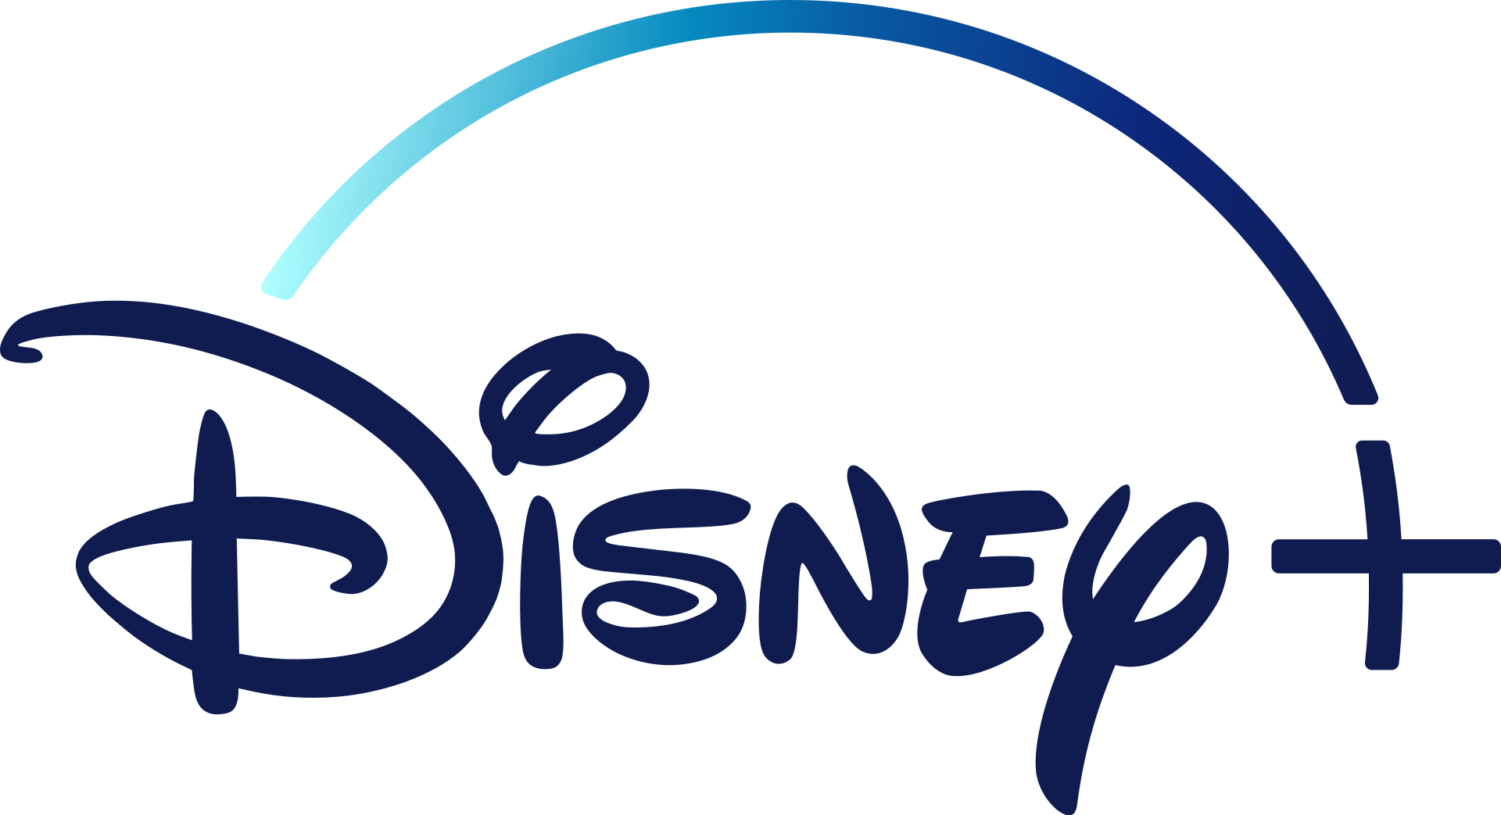 The Walt Disney Company is furthering their regime into the online streaming world with Disney Plus.